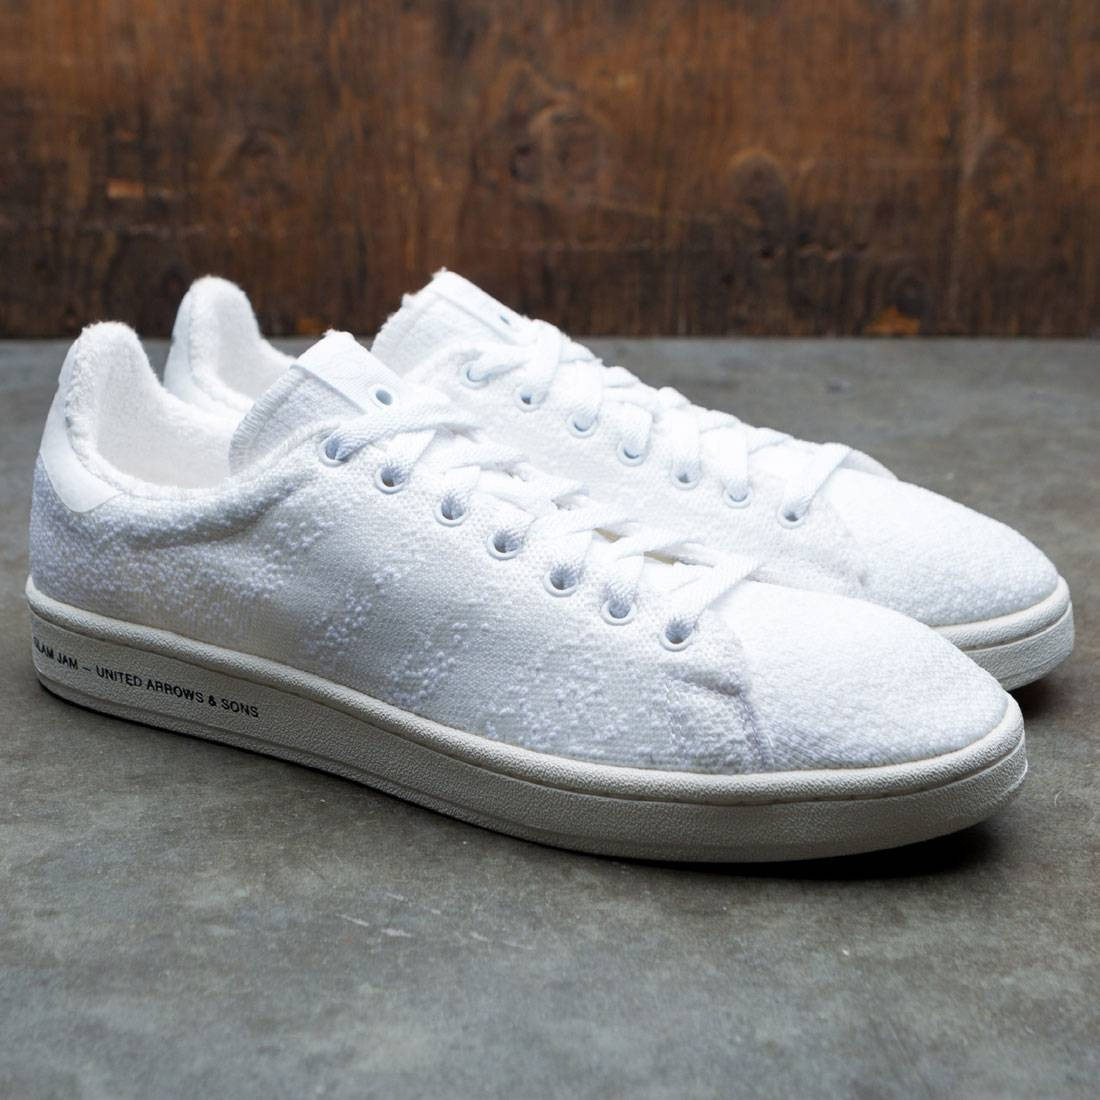 33819474b6b0 Adidas Consortium x United Arrows And Sons x Slam Jam Men Campus Sneaker  Exchange (white   footwear white   chalk white)